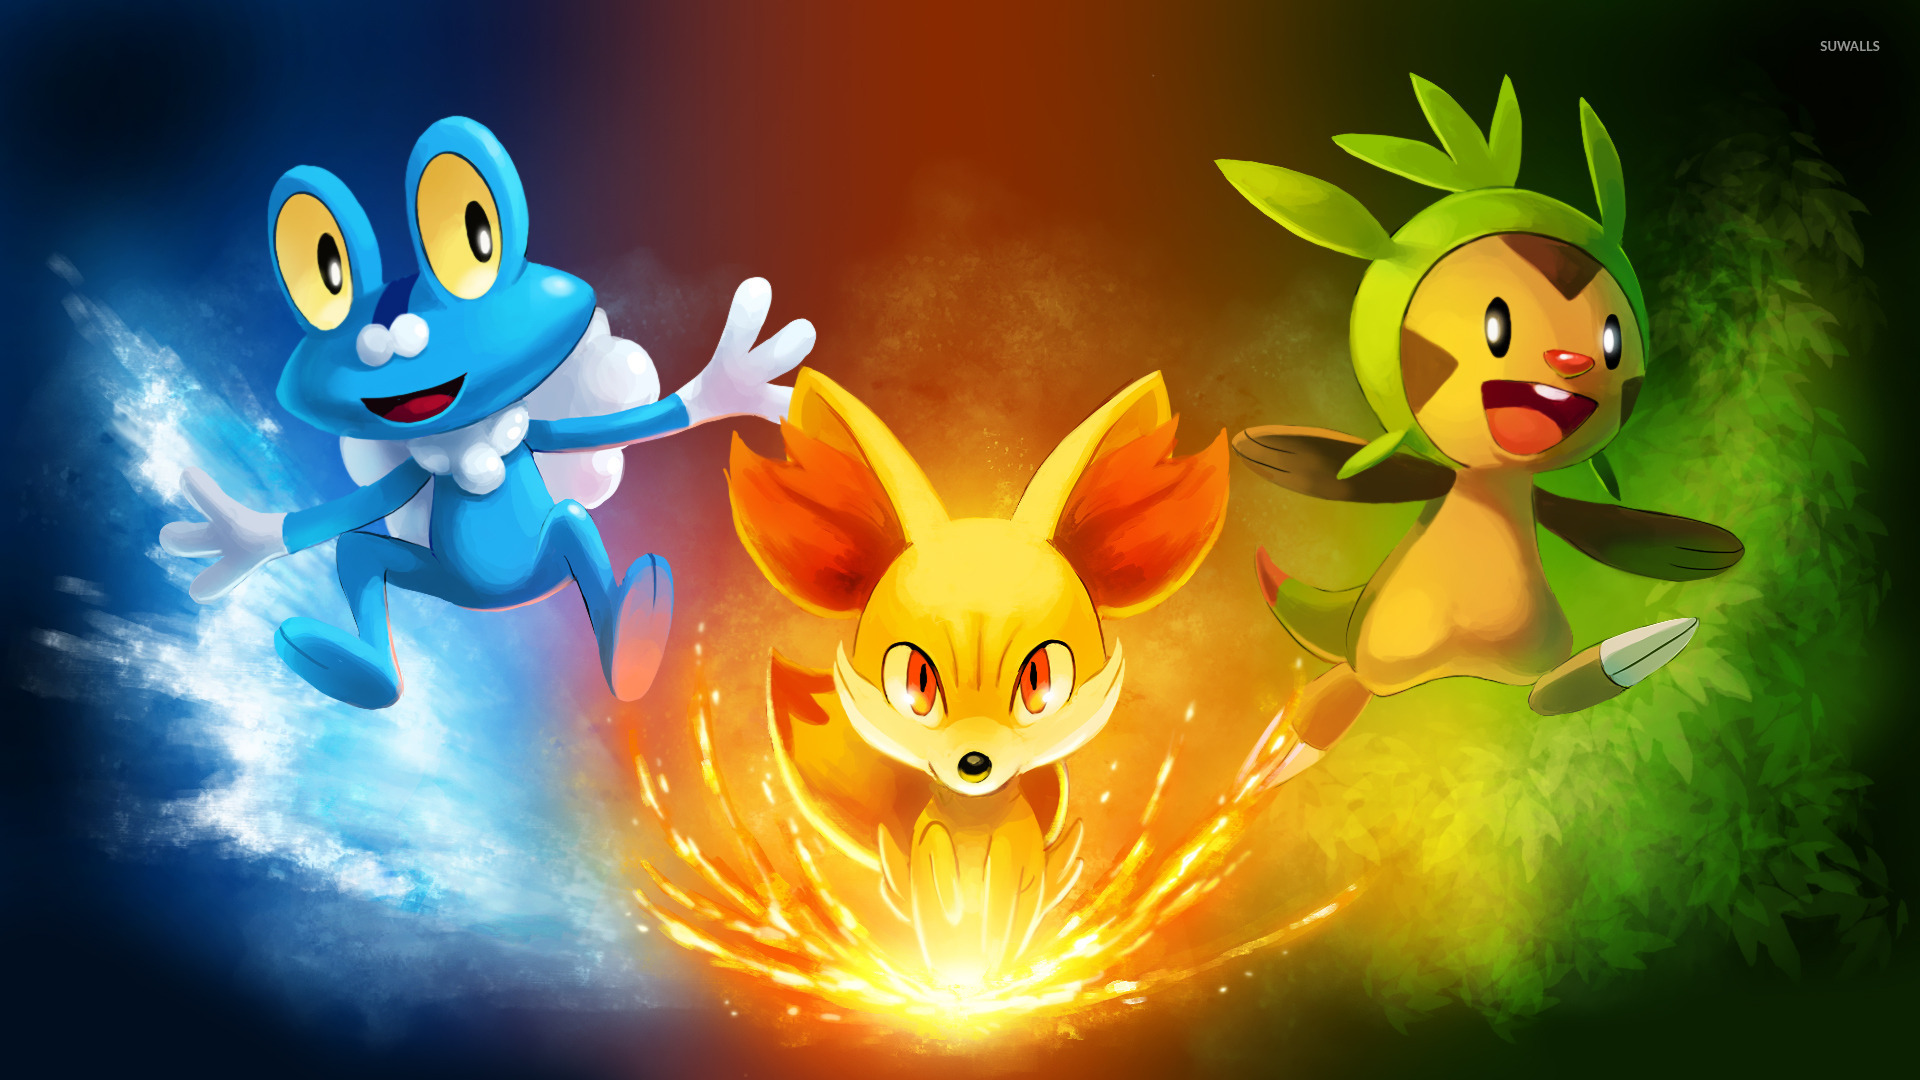 Pokemon X and Y wallpaper   Game wallpapers   21692 1920x1080